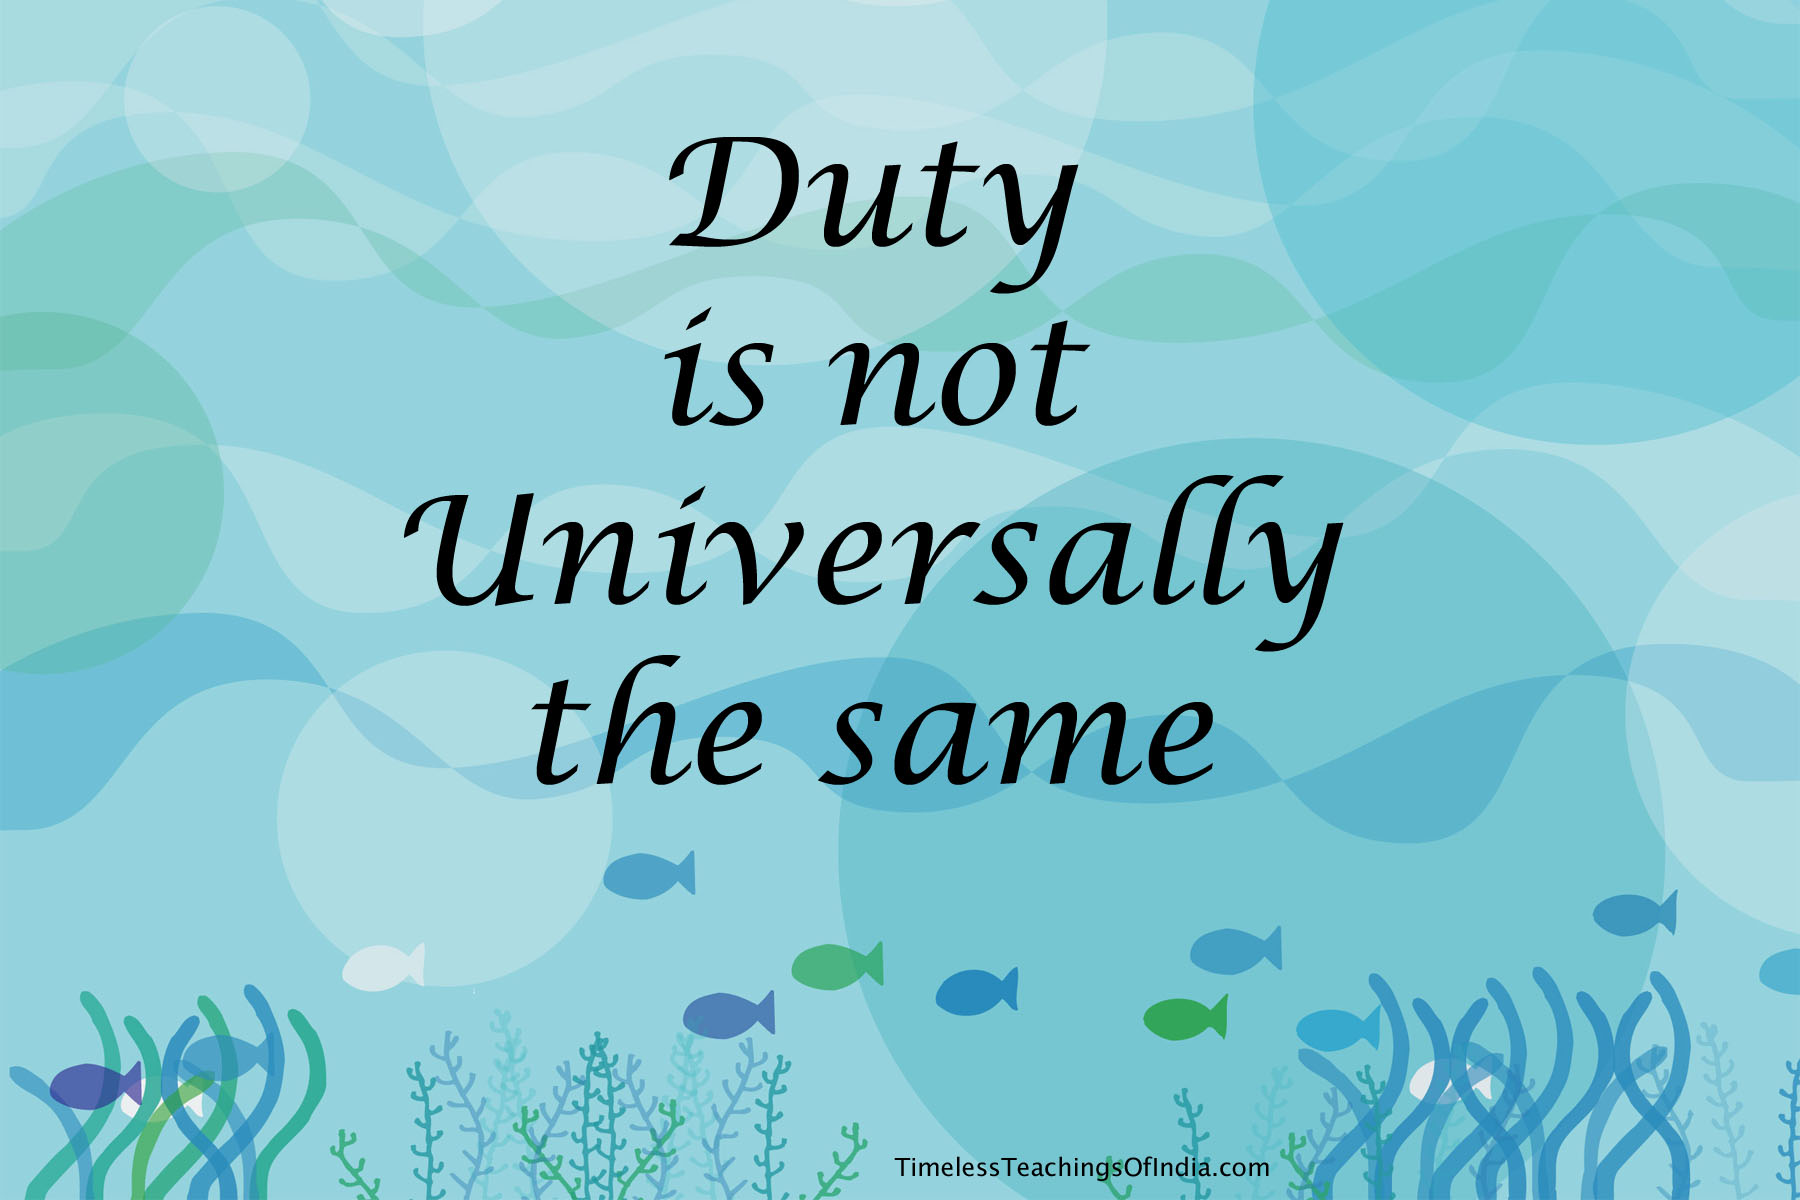 Do not univesally same - Vivekananda